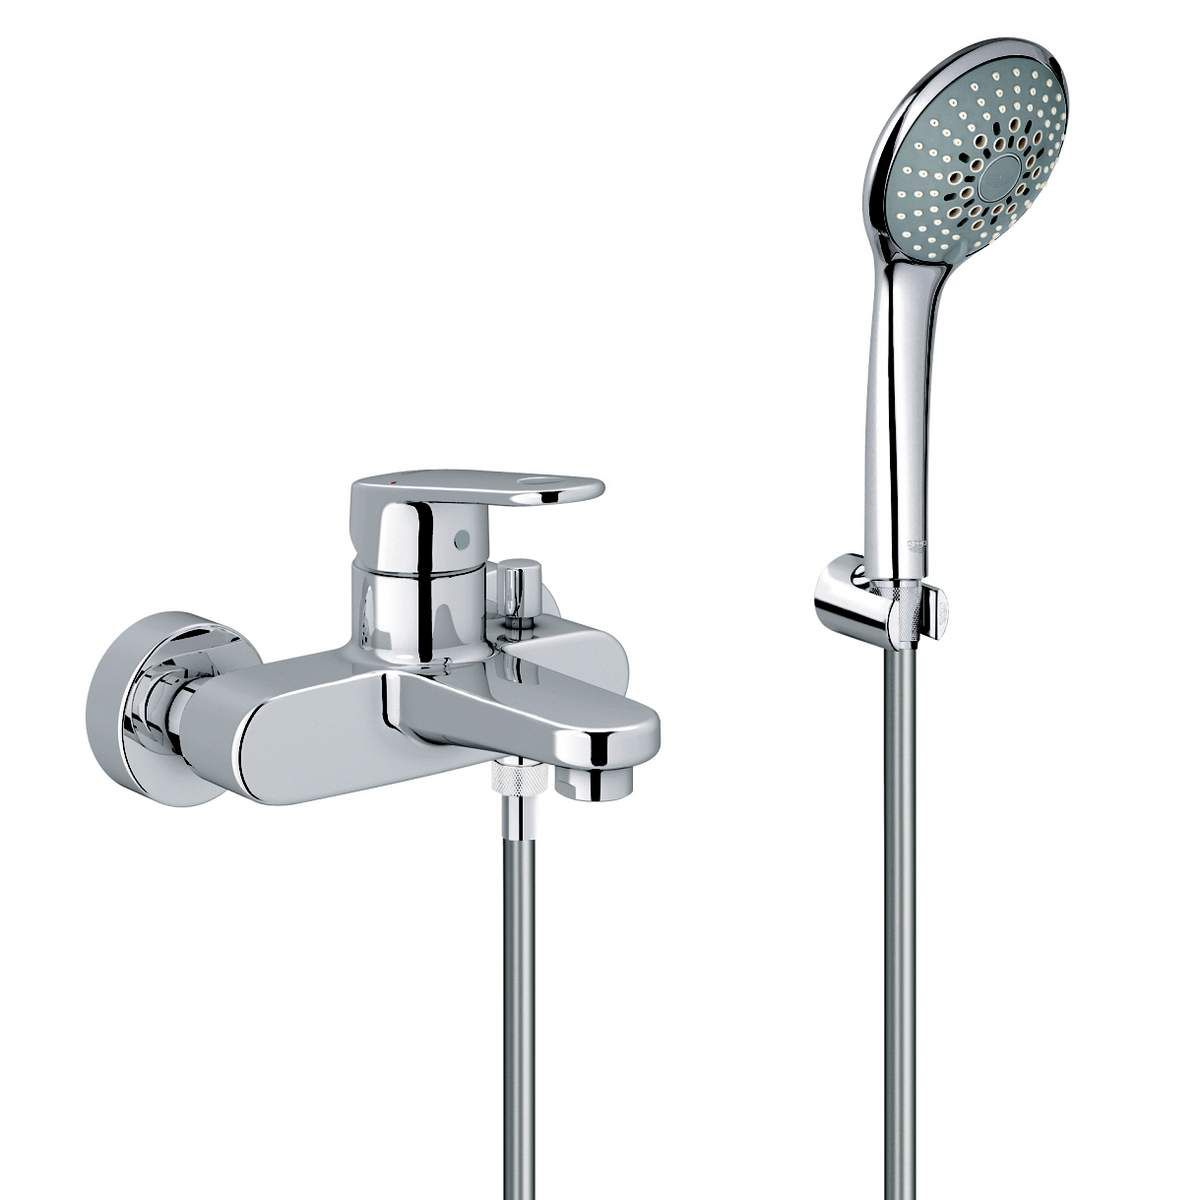 picture of a bath shower mixer tap